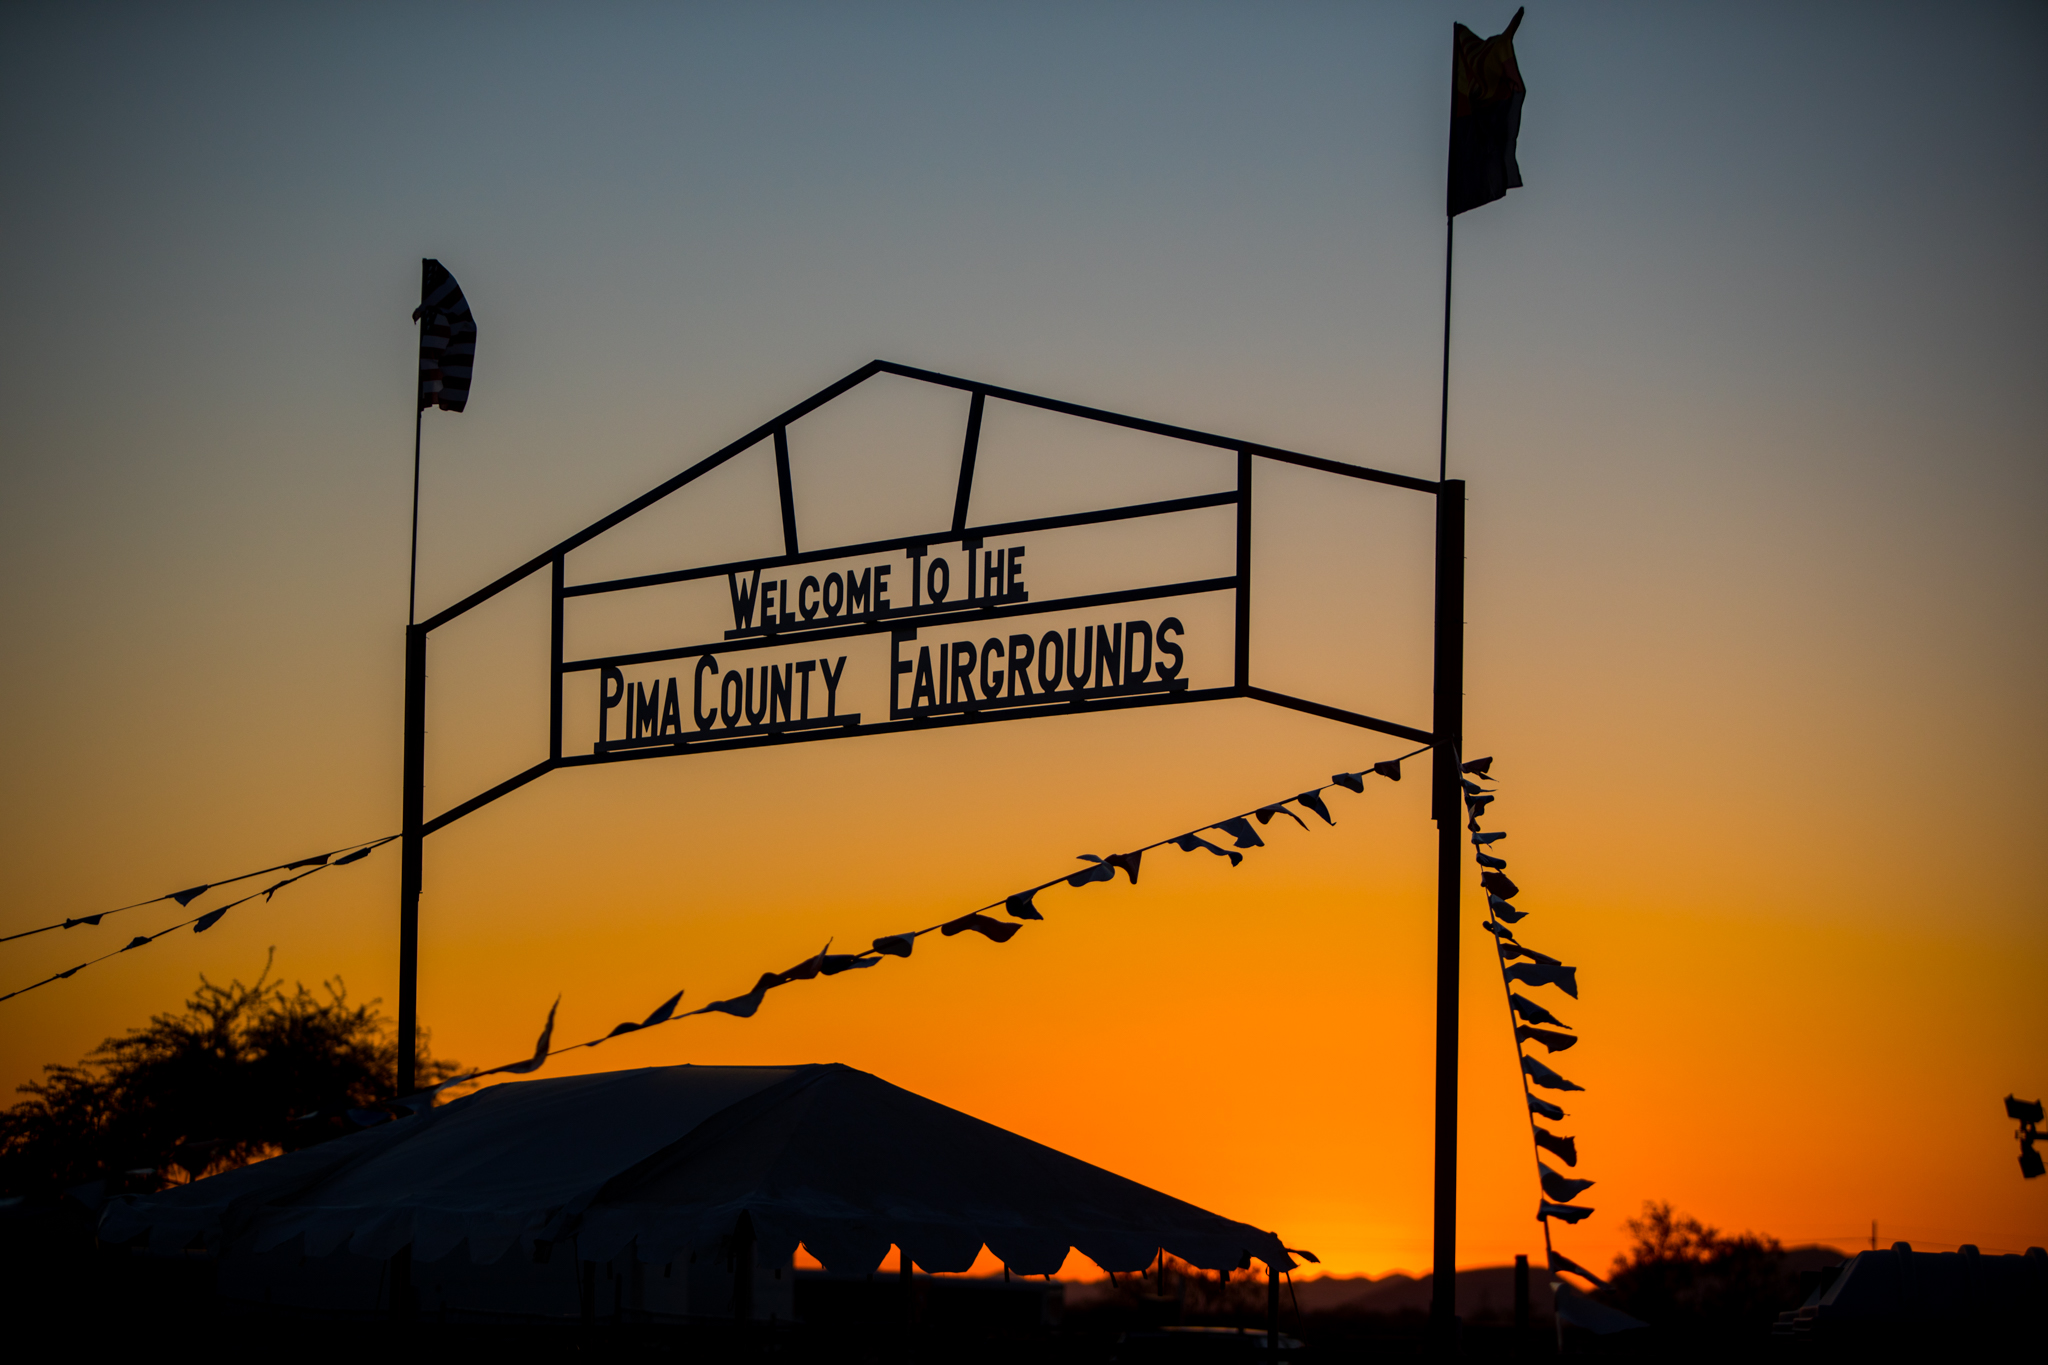 Sunsetting behind the Pima Fairgrounds Sign